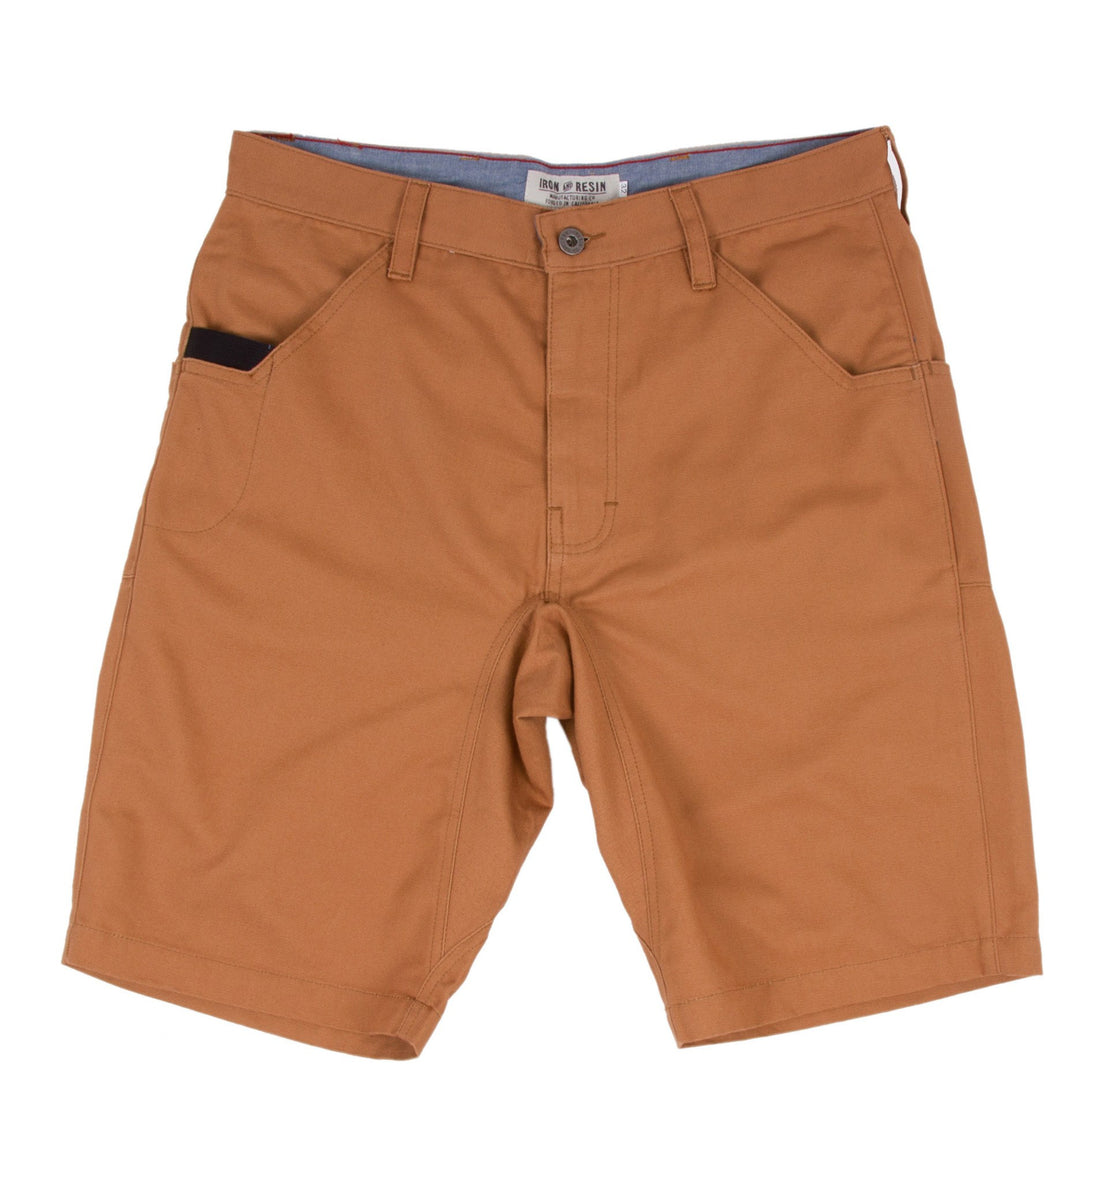 Nomad Short - Apparel: Men's: Shorts - Iron and Resin